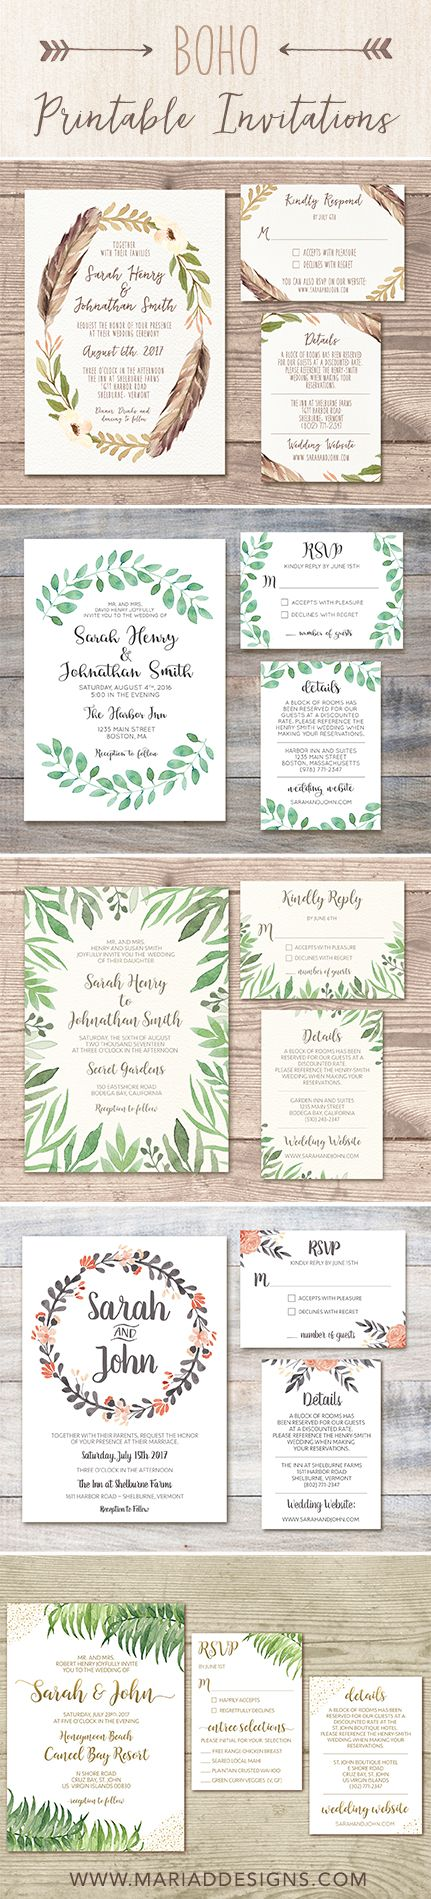 These printable wedding invitation designs are perfect for the bohemian, free-spirted, nature loving bride!!! Designed by Maria D. Designs. Available on Etsy and Mariaddesigns.com. Made with love <3 #bohowedding #printableinvitations #weddinginvitations #bohoinvitations #graphicdesign #bohemian #naturedesign #bohemianbride #mariaddesigns #art #greenwedding